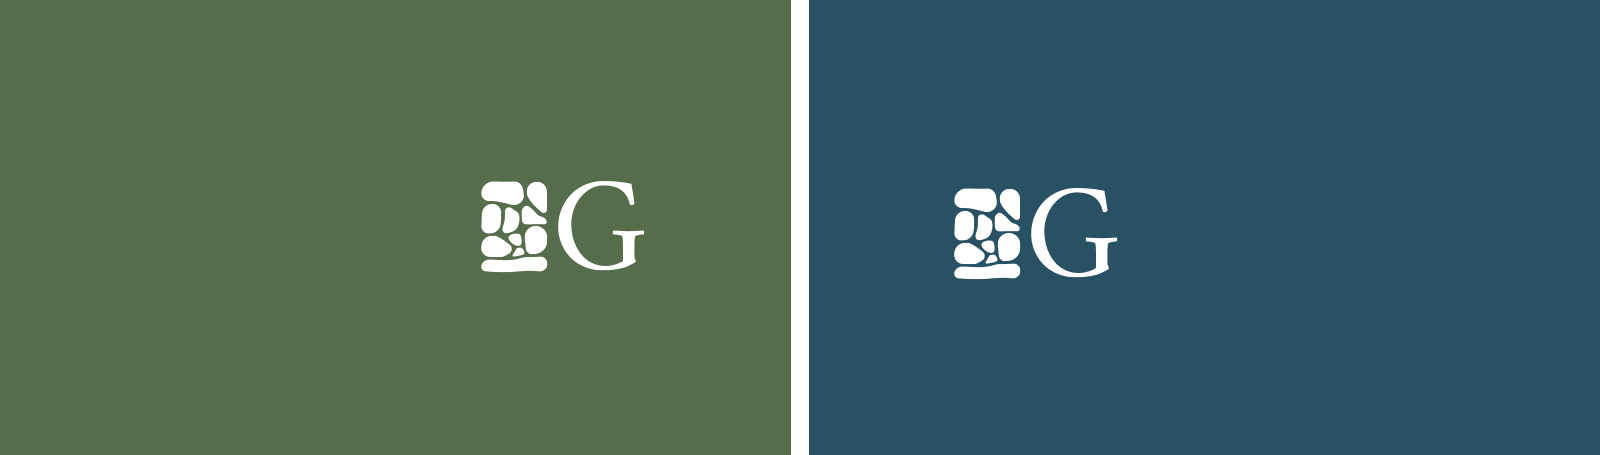 Gather Financial™ Planning logo submarks with the stone logo mark and letter 'G' in white on a dark background